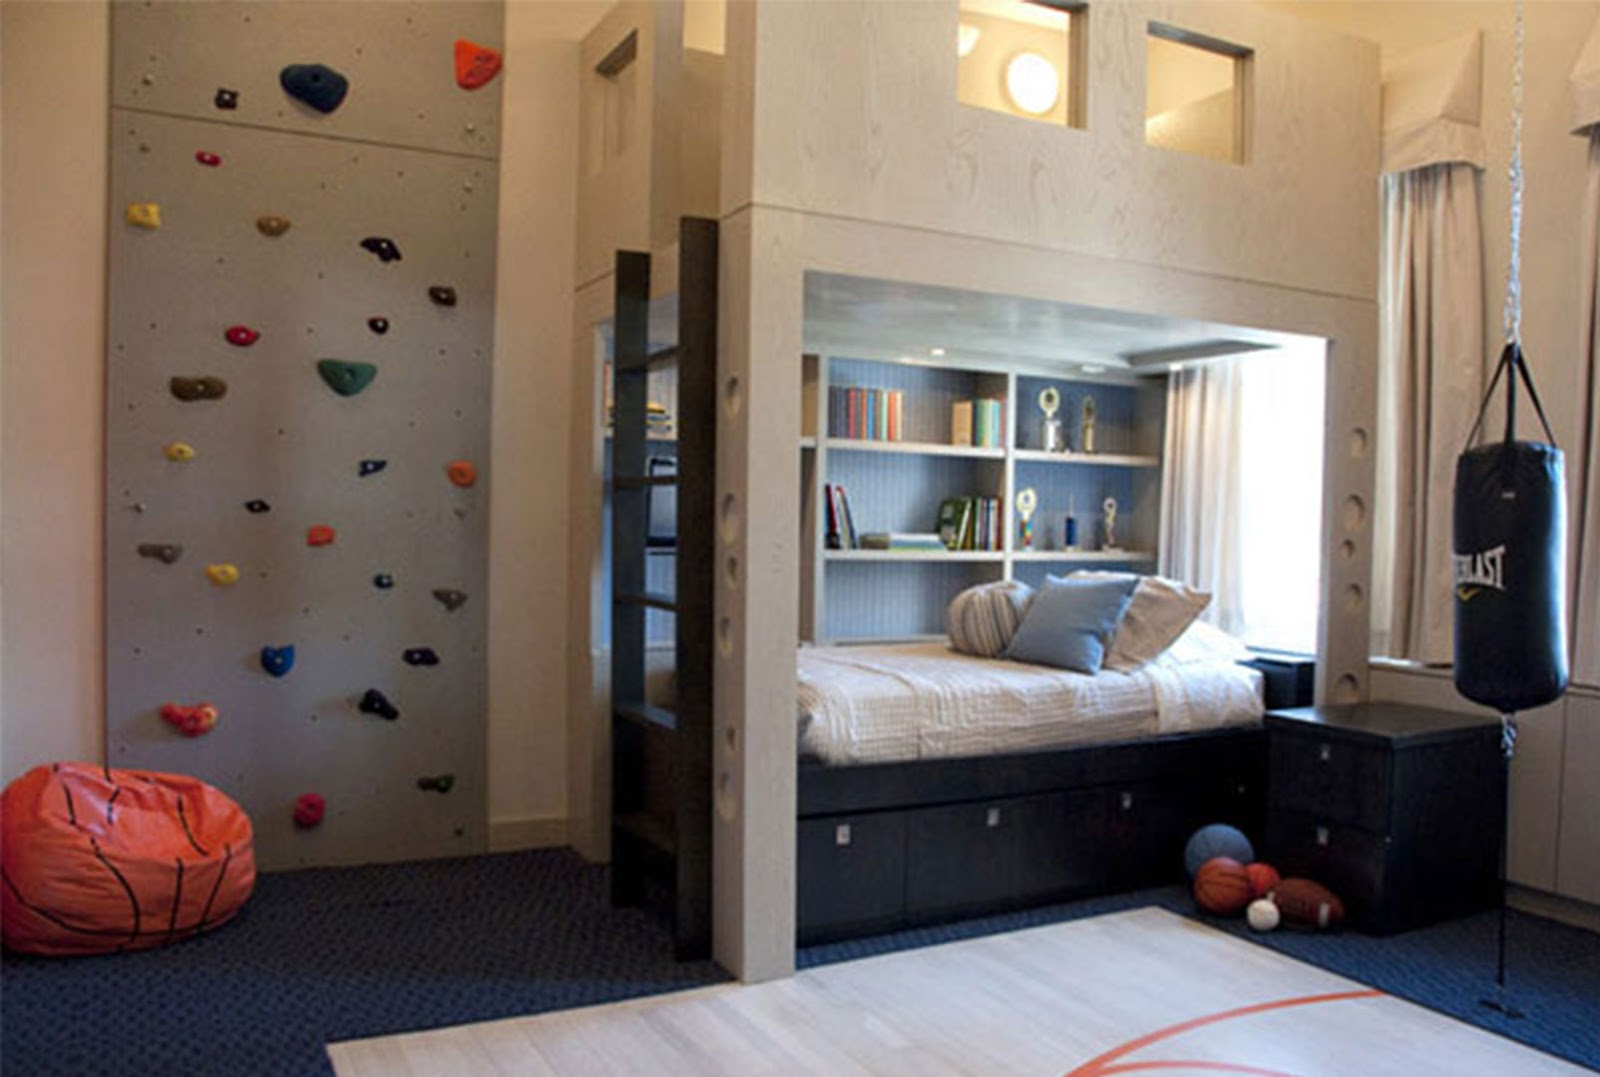 Kids Sports Room Ideas bathrooms models ideas: boys sports bedroom decorating ideas